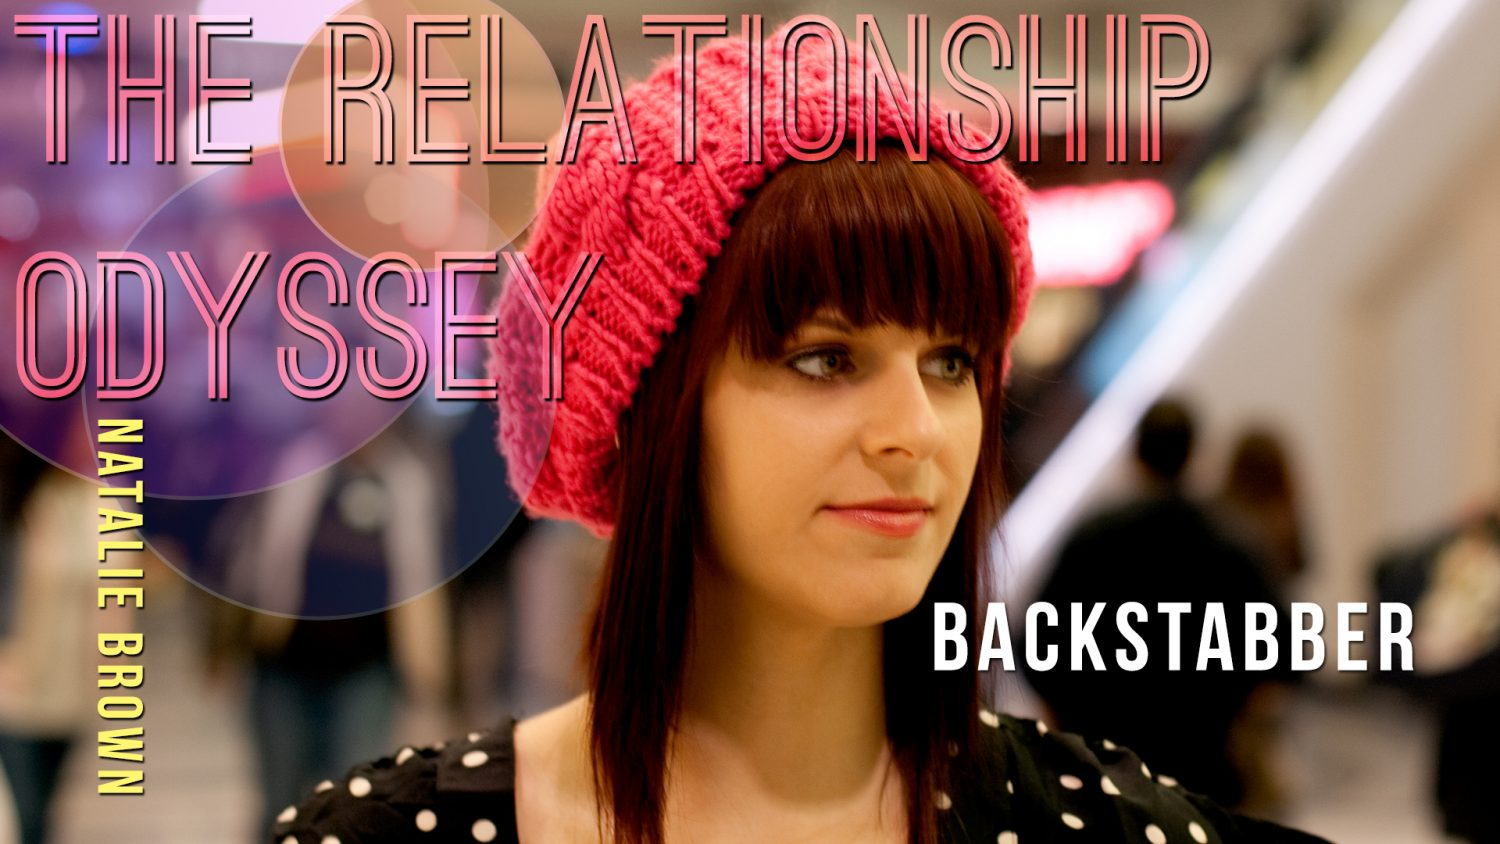 Backstabber | Natalie Brown | The Relationship Odyssey